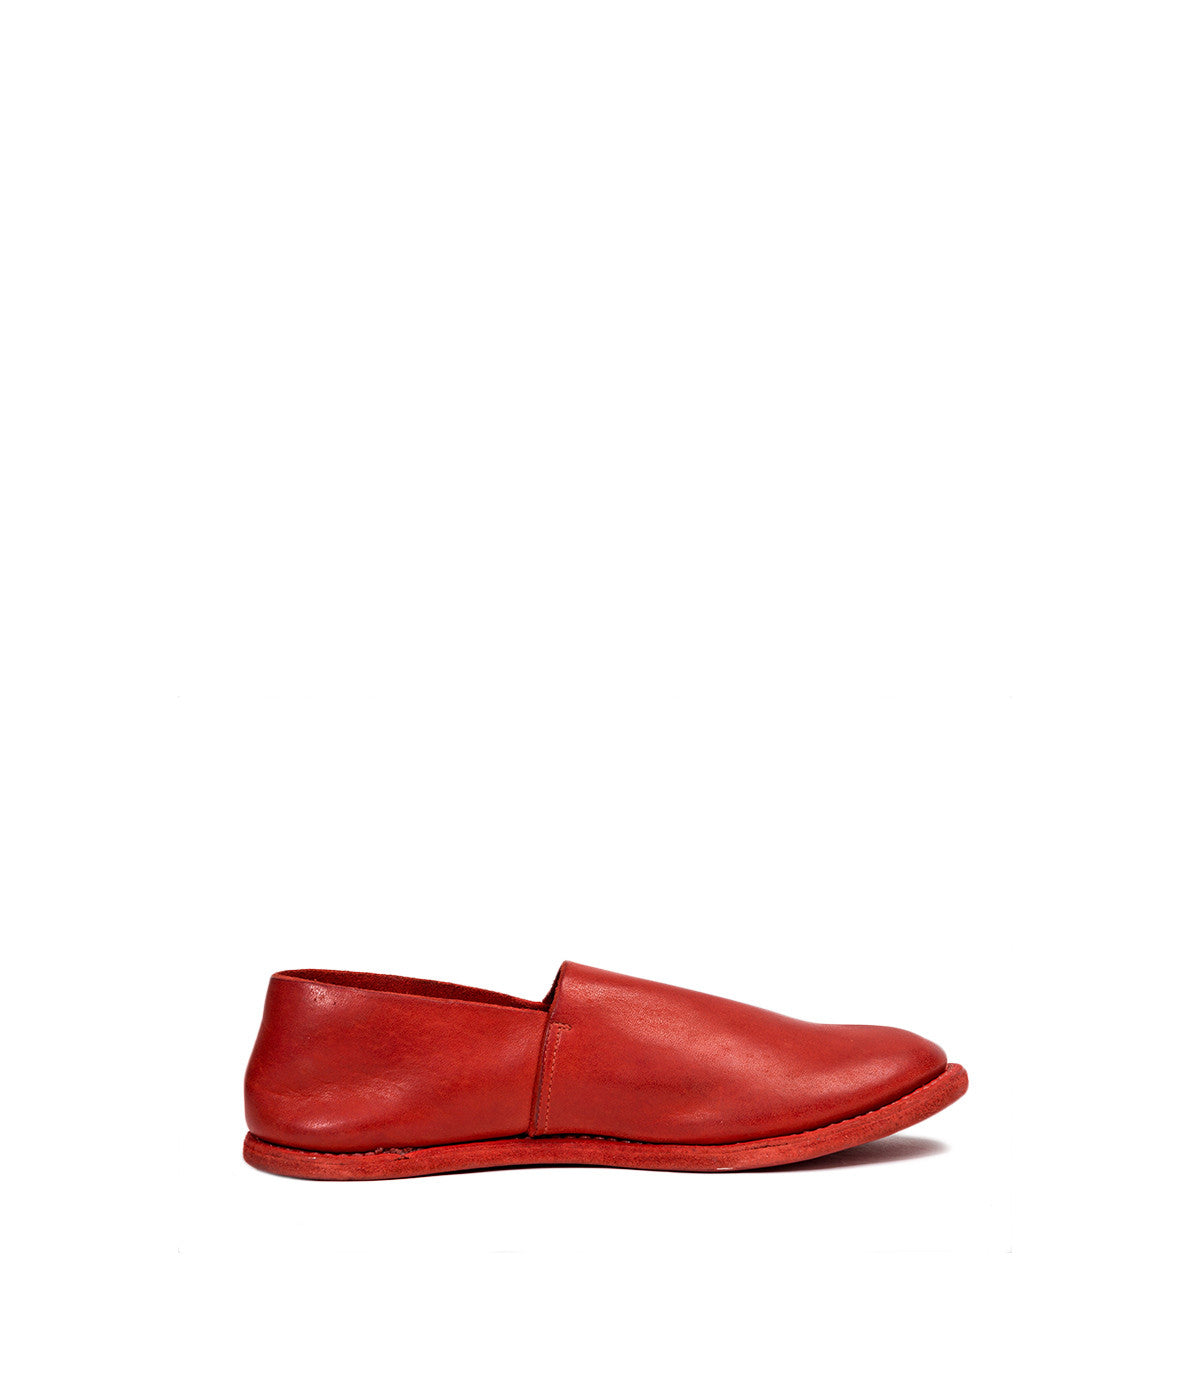 Perforated Calf Leather Slip-on Shoes